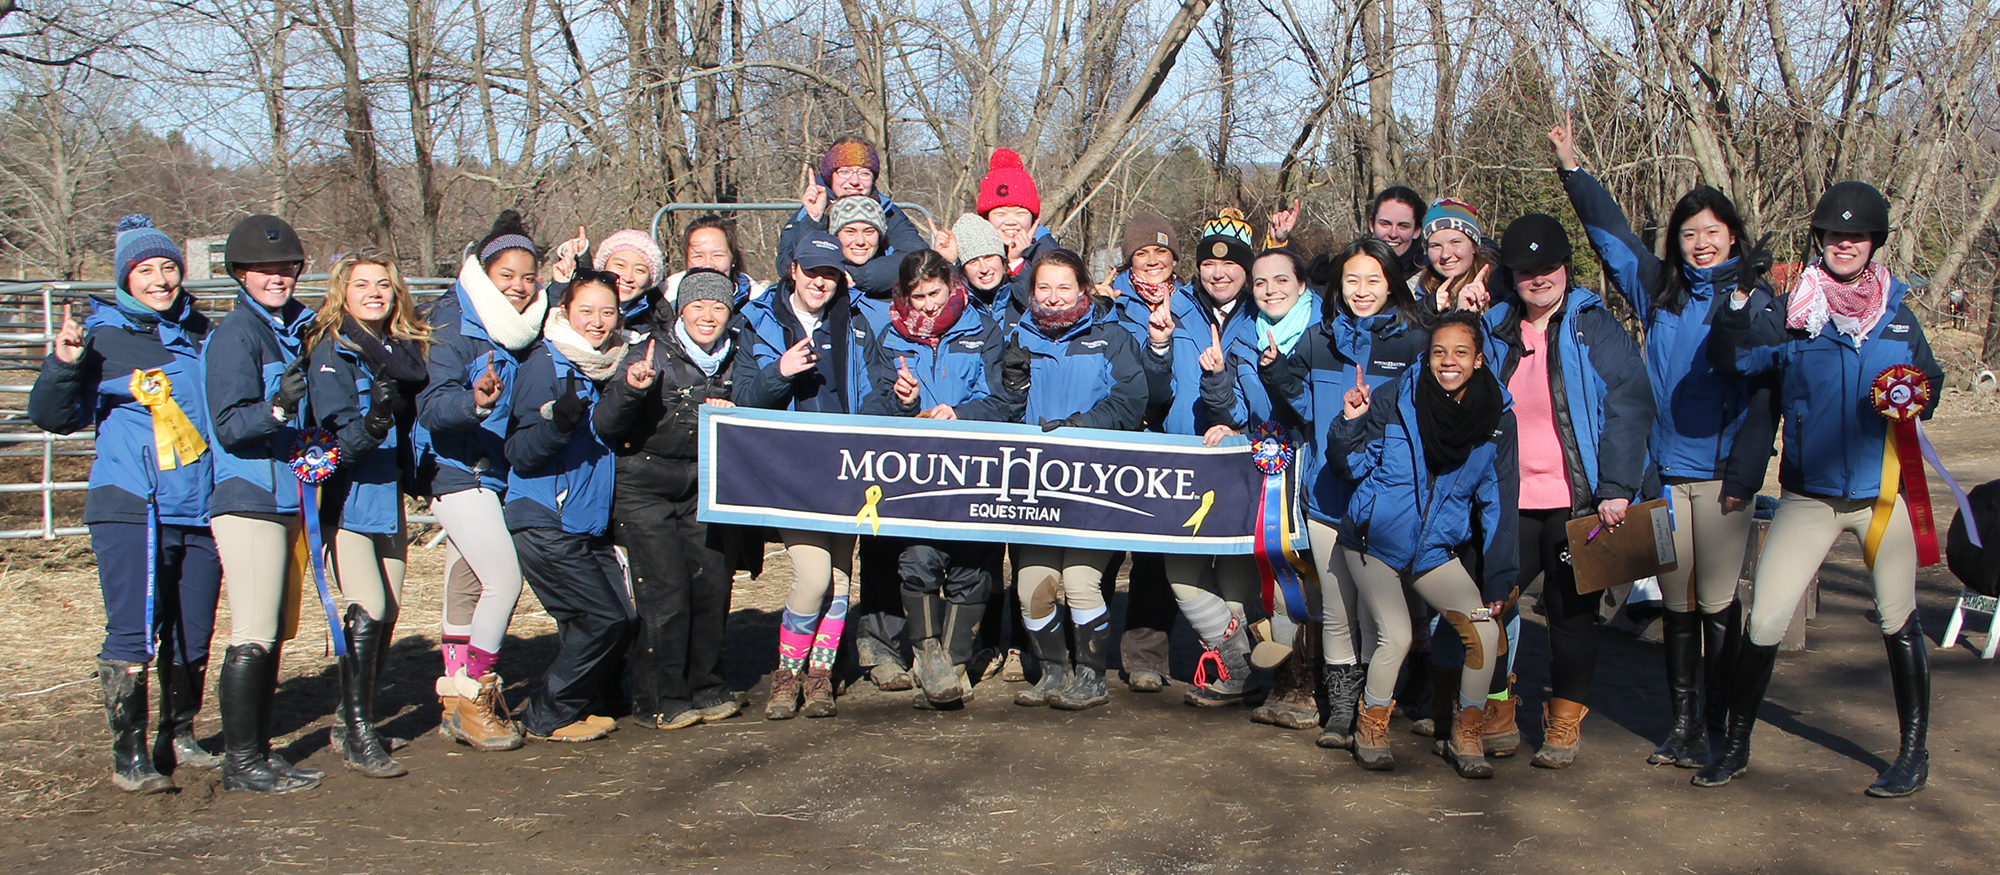 Group photo of the Lyons riding team following their victory at the Hampshire College Show on March 23, 2019.